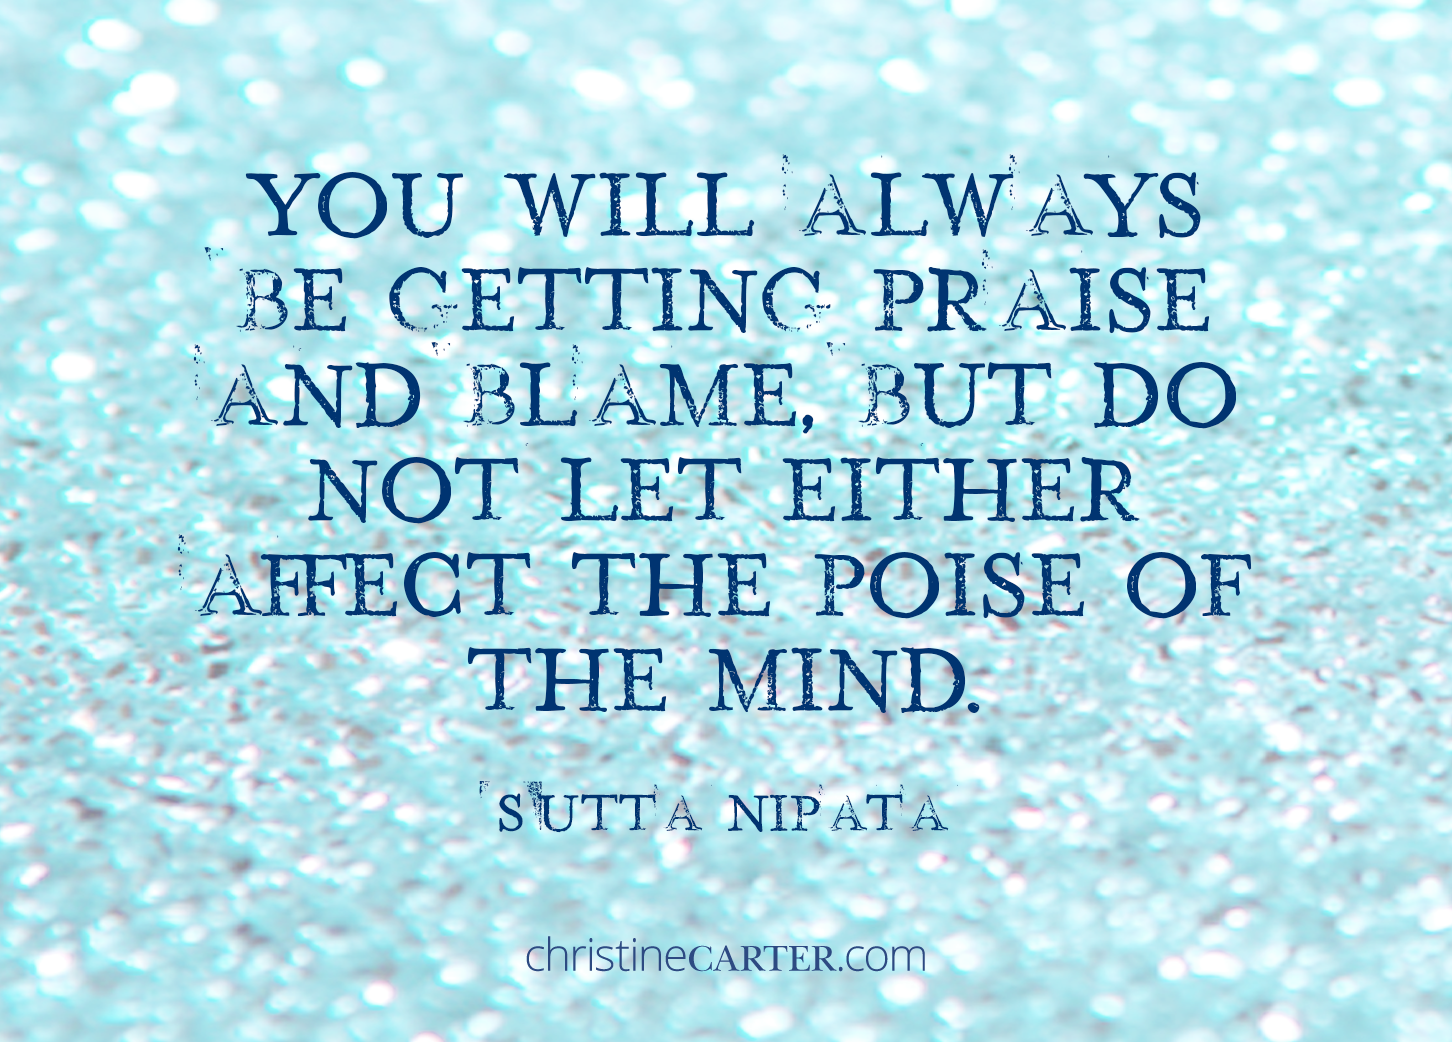 """You will always be getting praise and blame, but do not let either affect the poise of the mind."""" -- Sutta Nipata"""